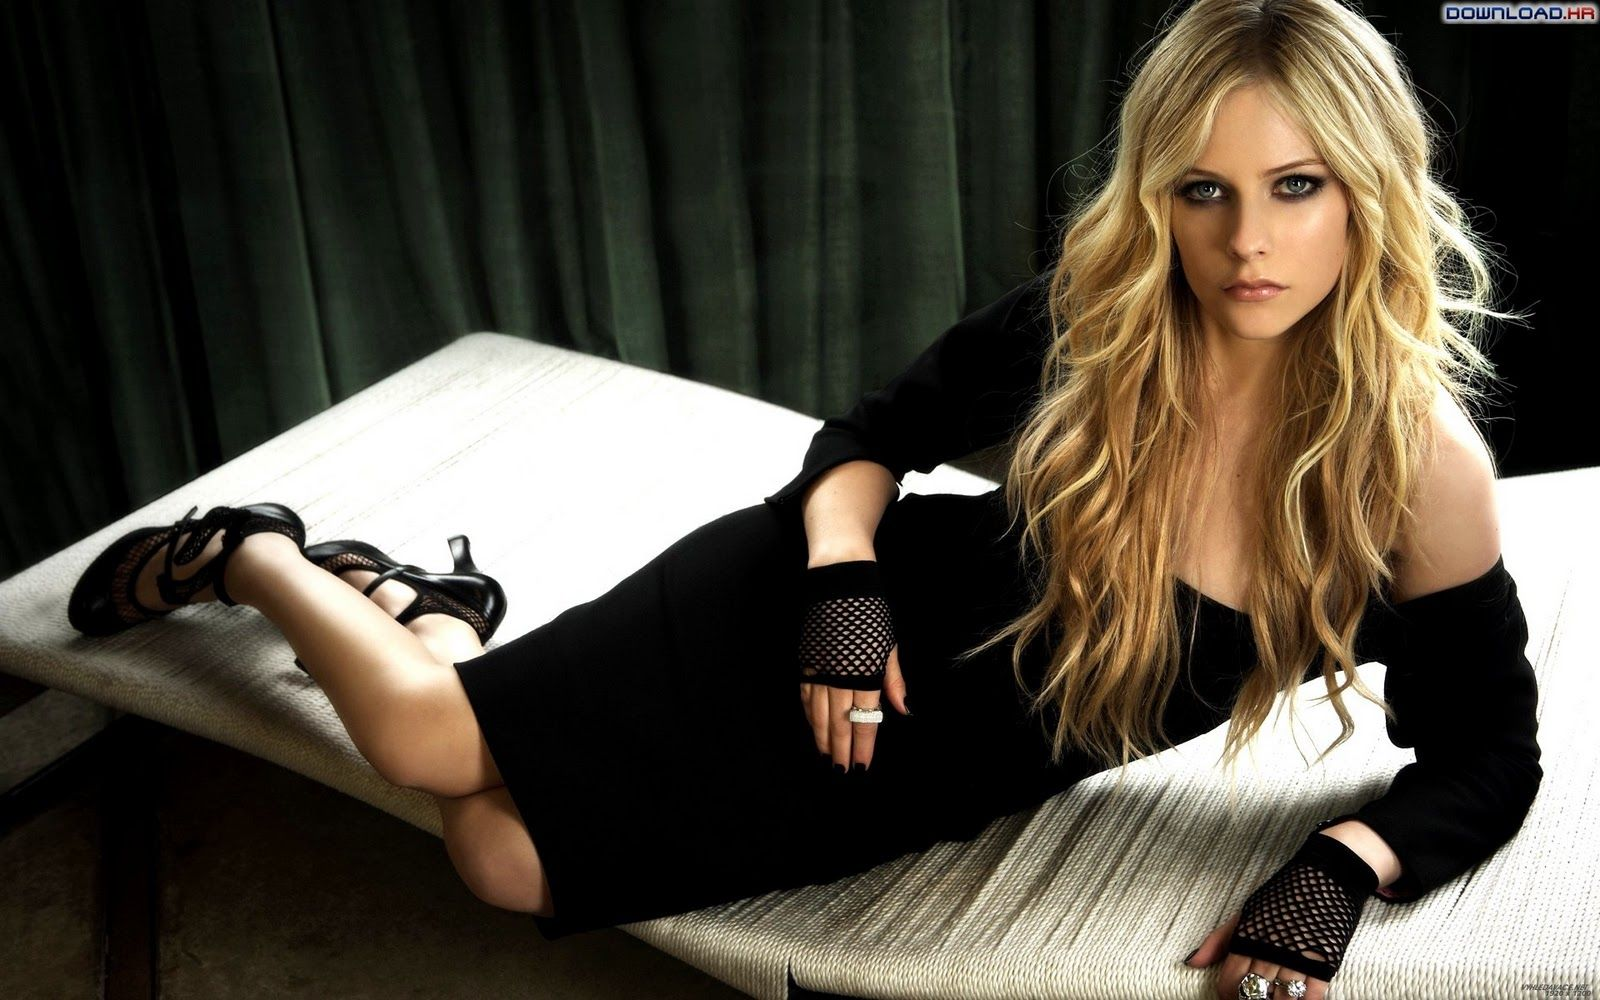 Avril Lavigne Avril Lavigne Celebrities Celebrity Wallpapers